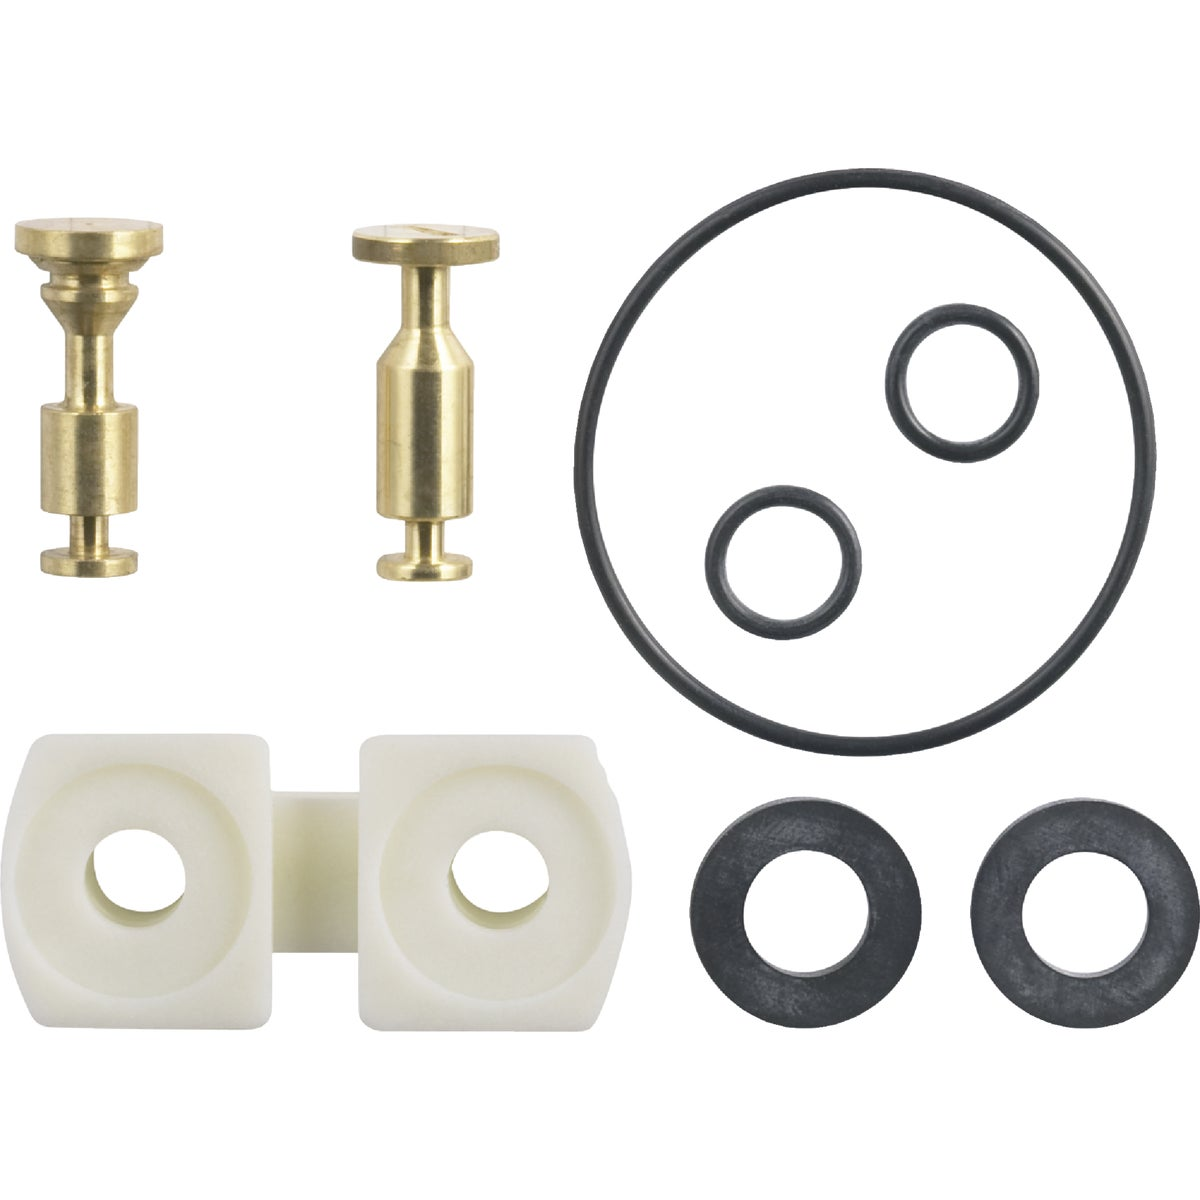 VALVE REPAIR KIT - GP78579 by Kohler Co